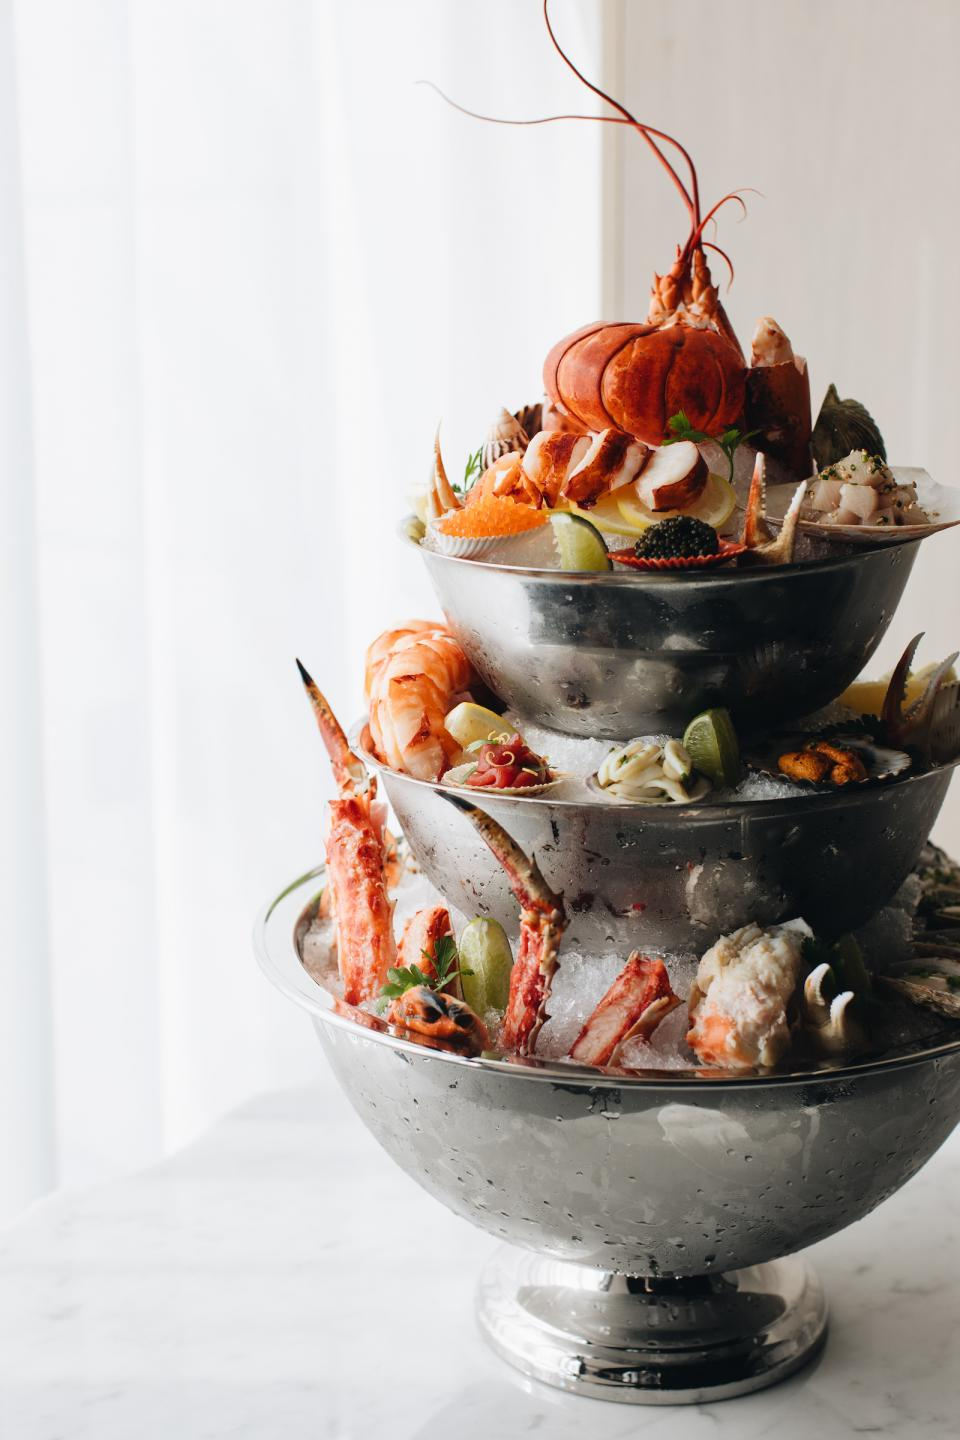 SEafood Tower at RPM Seafood